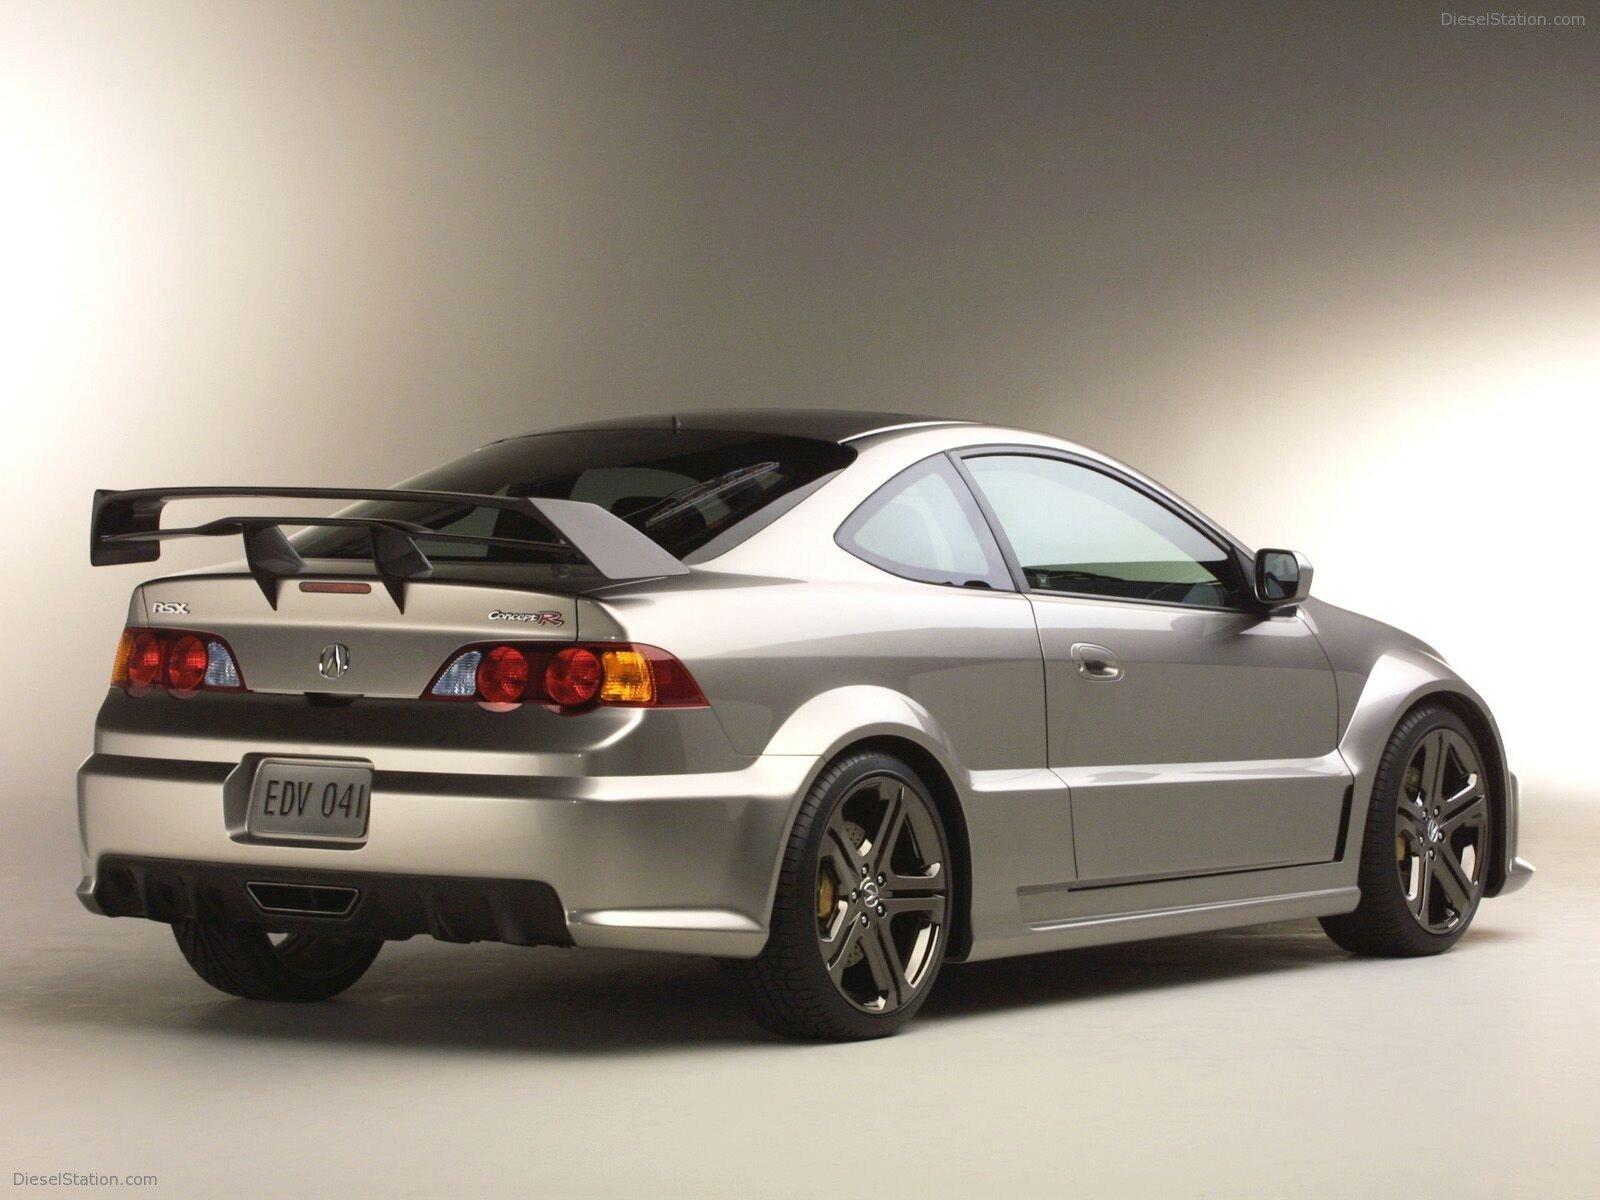 Latest Acura Rsx Exotic Car Wallpapers 038 Of 49 Diesel Station Free Download